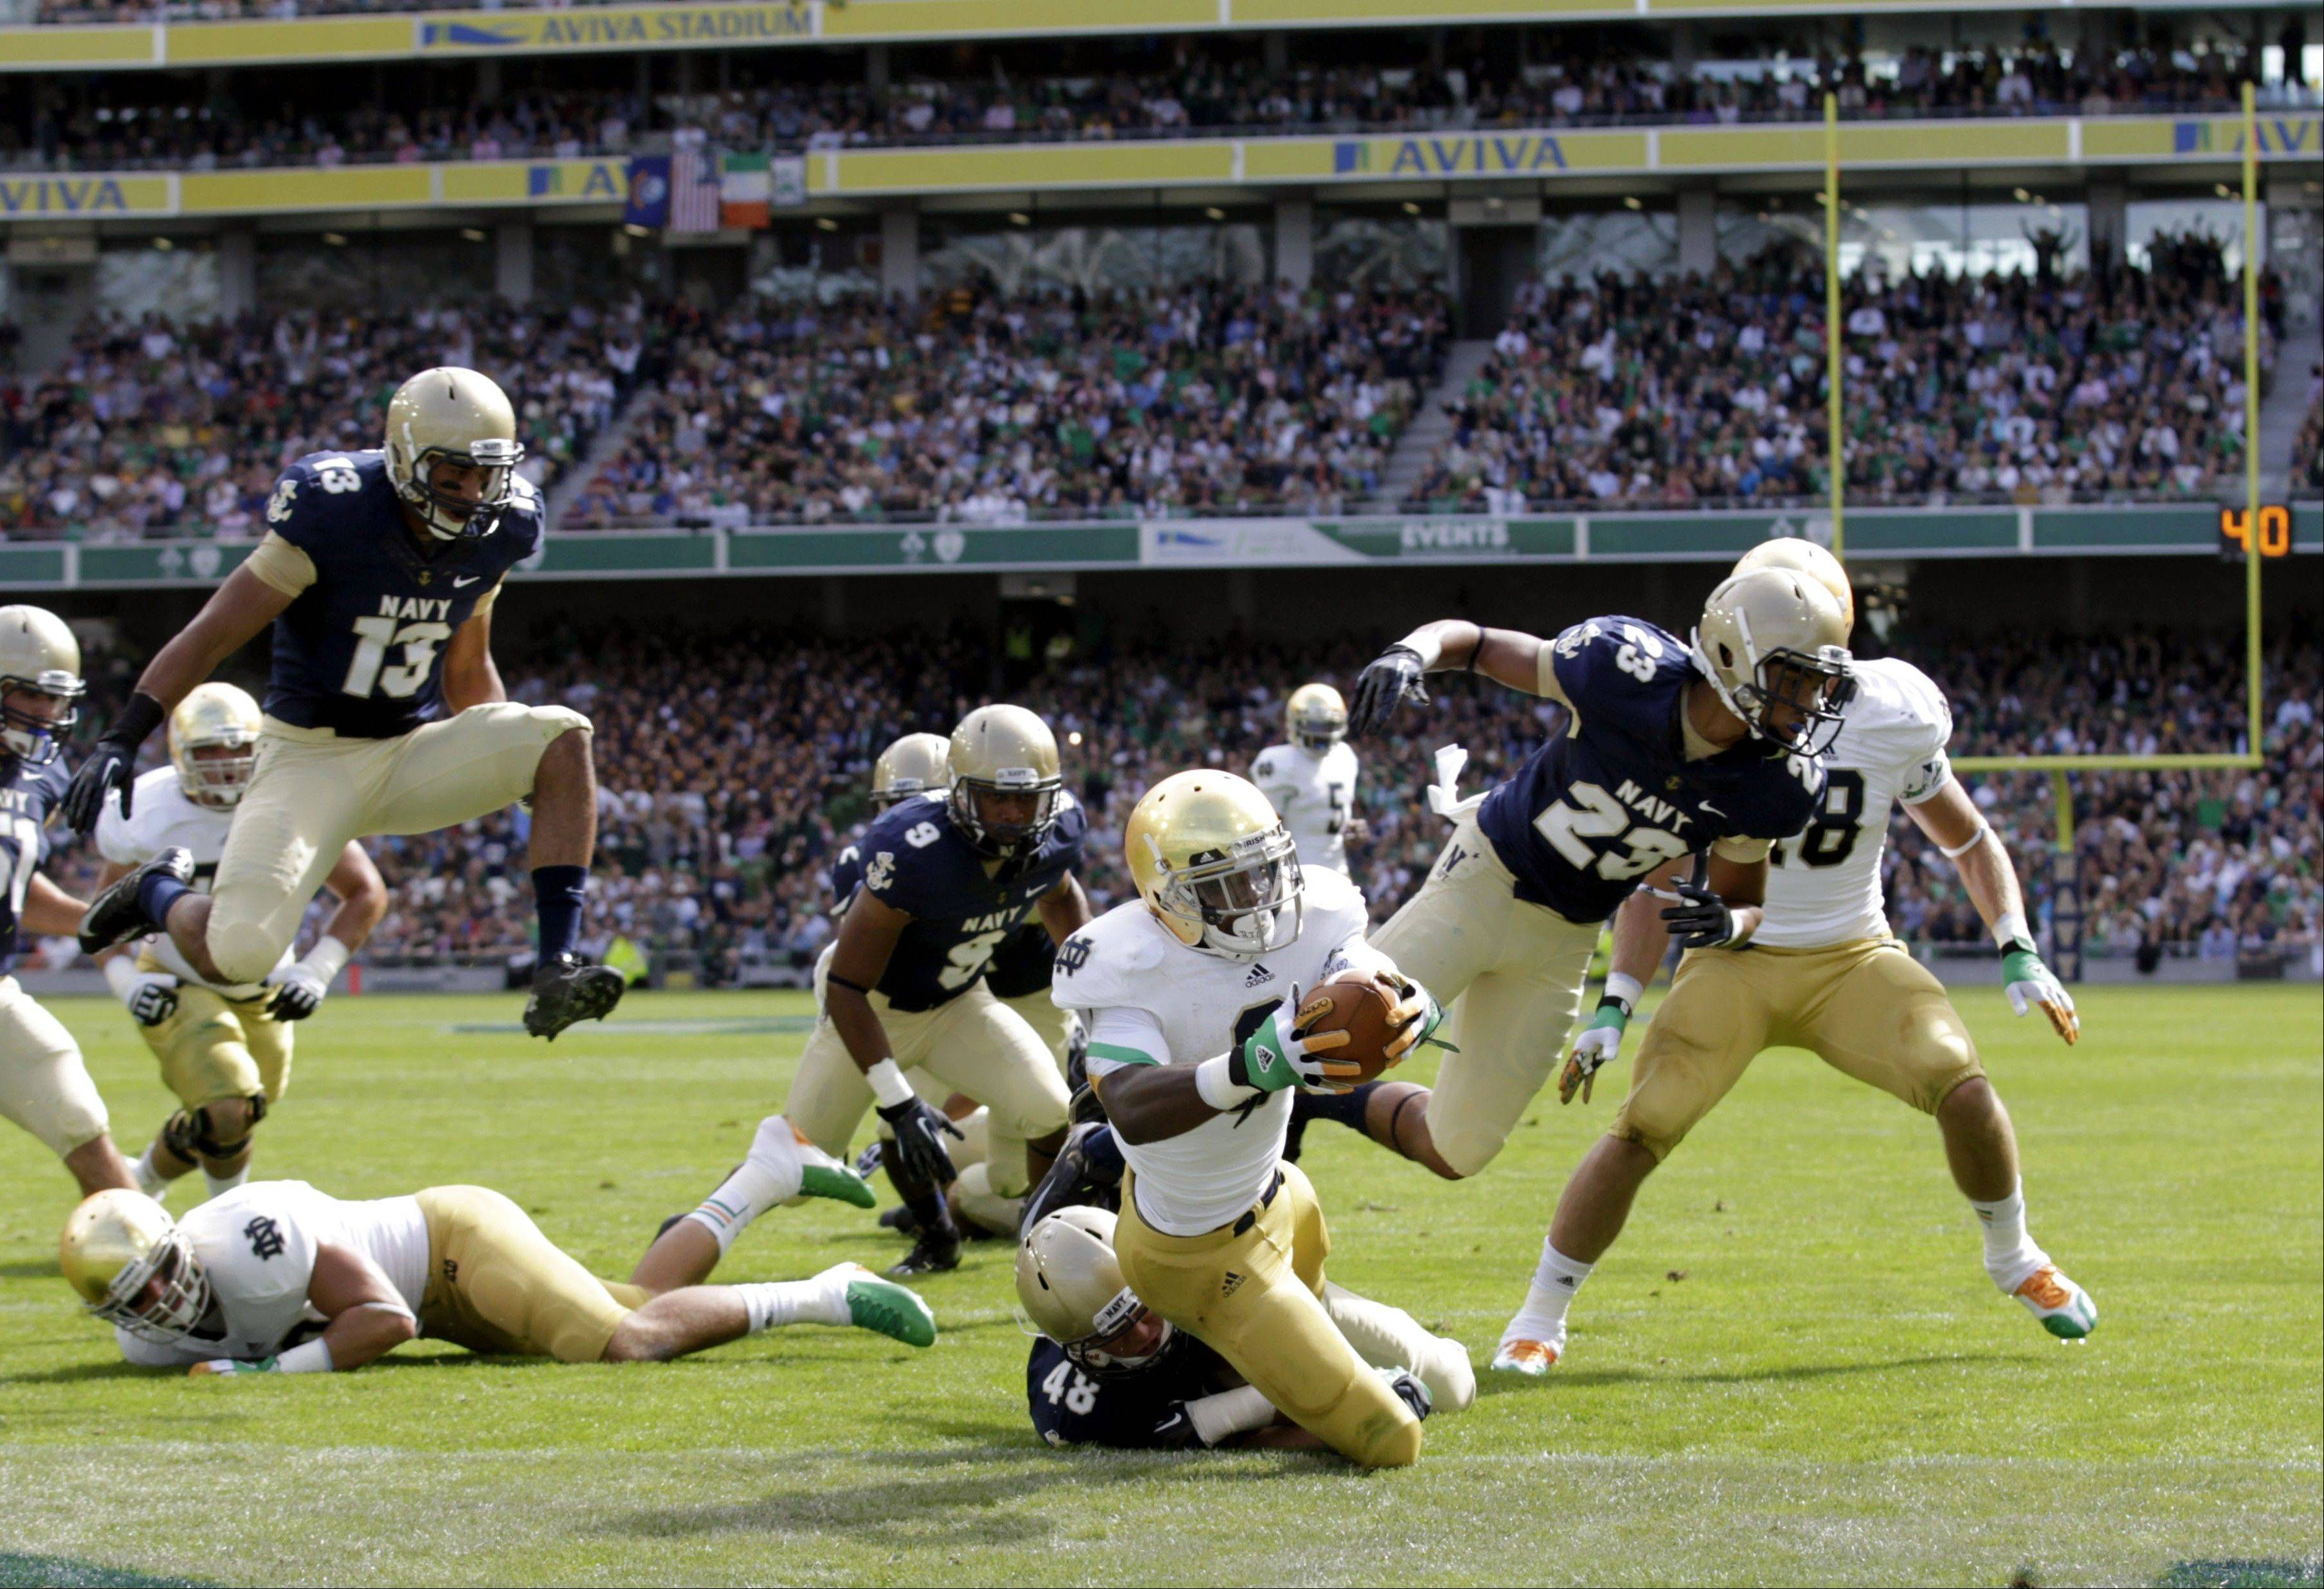 Notre Dame�s Theo Riddick, centre, scores a touchdown, as he is tackled by Navy�s Keegan Wezel during their NCAA college football game in Dublin, Ireland, Saturday, Sept. 1.